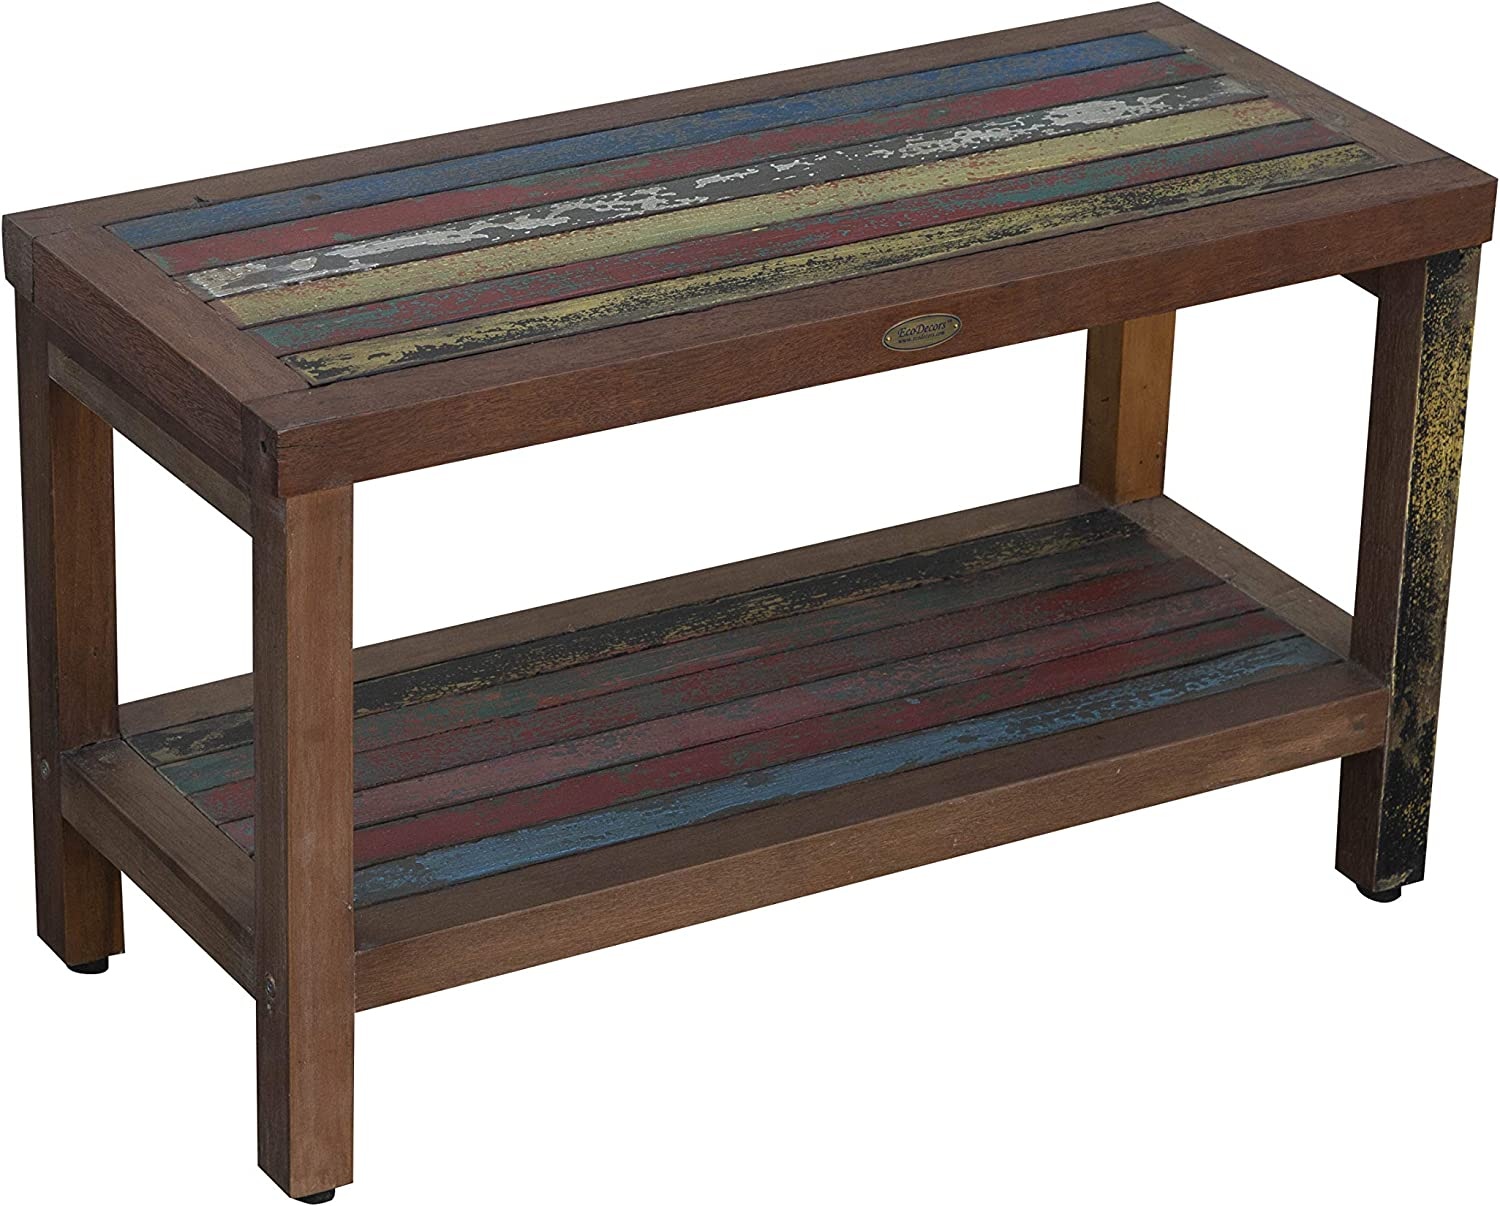 Decoteak Reclaimed Salvaged Rustic Recycled 29 Boat Wood Bench- Indoor Outdoor Bench